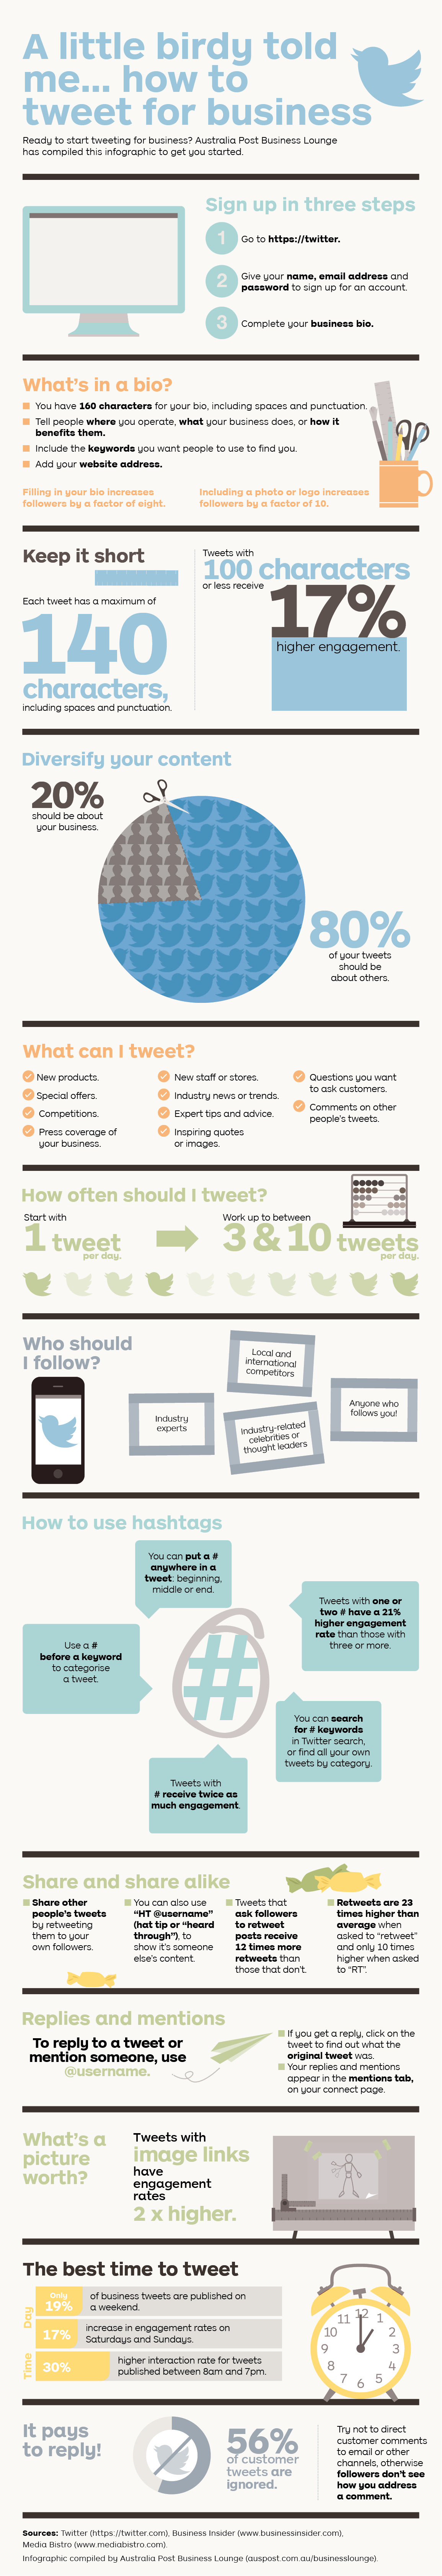 A Little Birdy Told Me... How To Tweet For Business